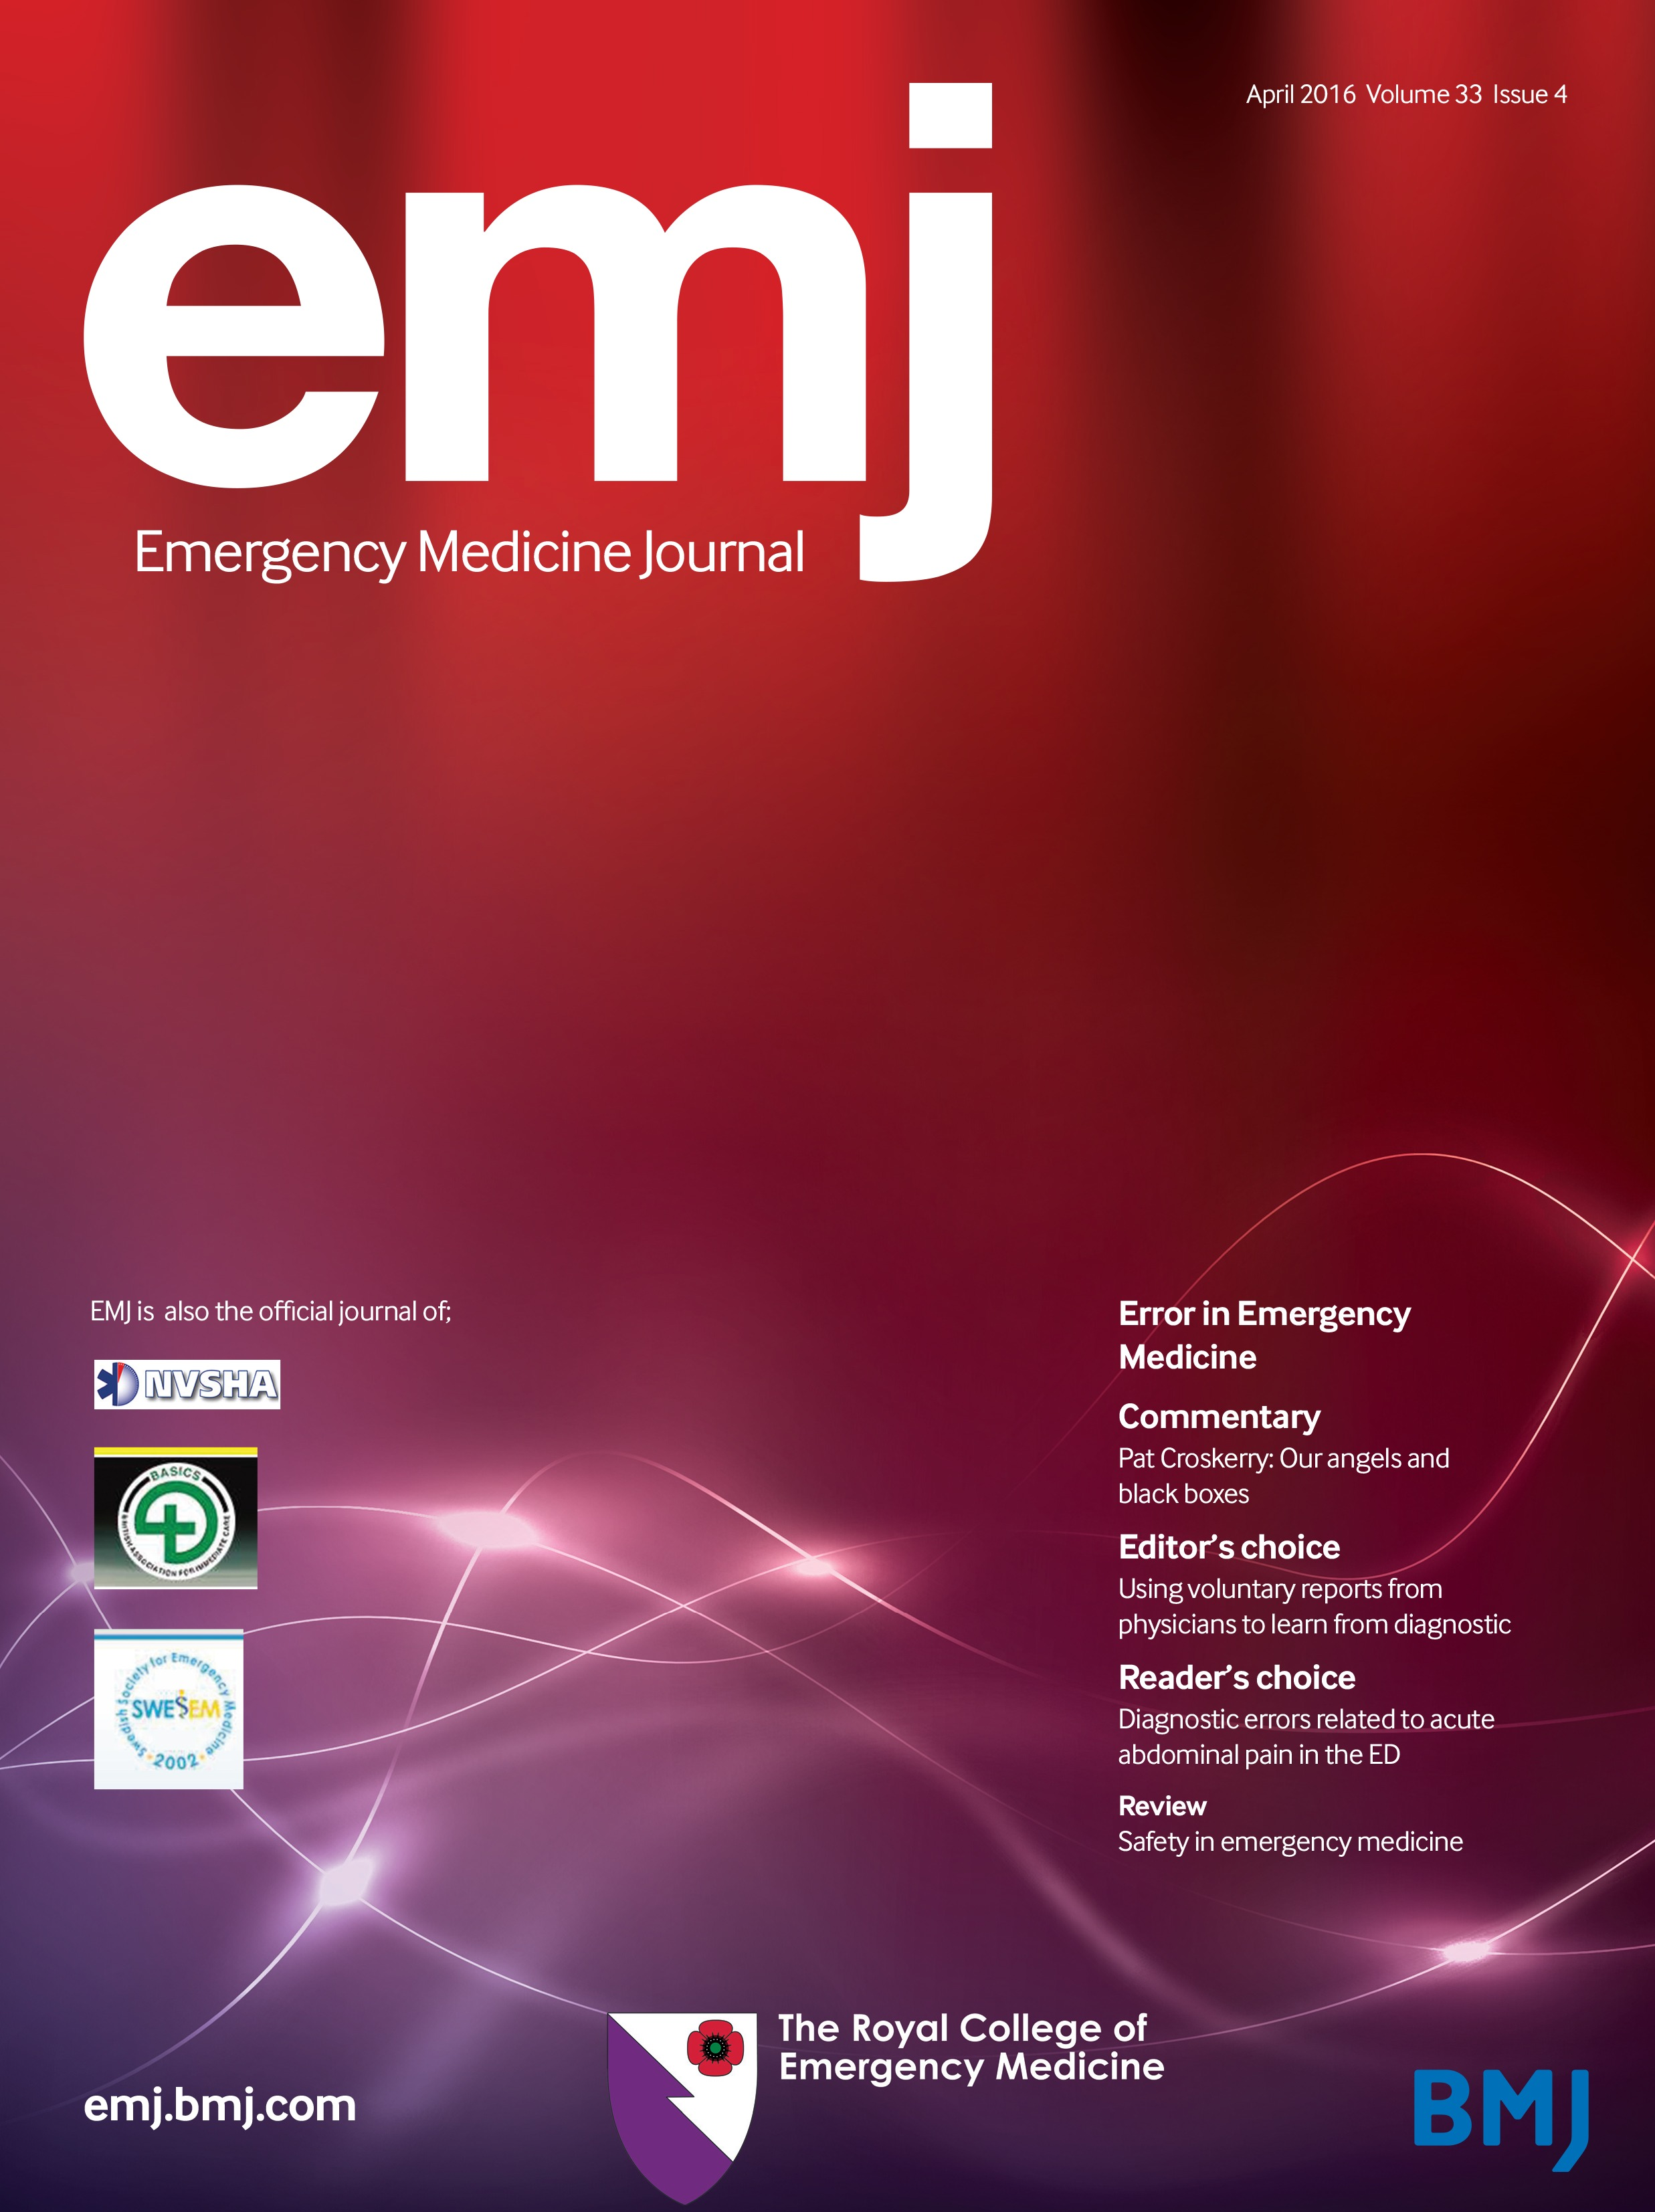 Diagnostic errors related to acute abdominal pain in the